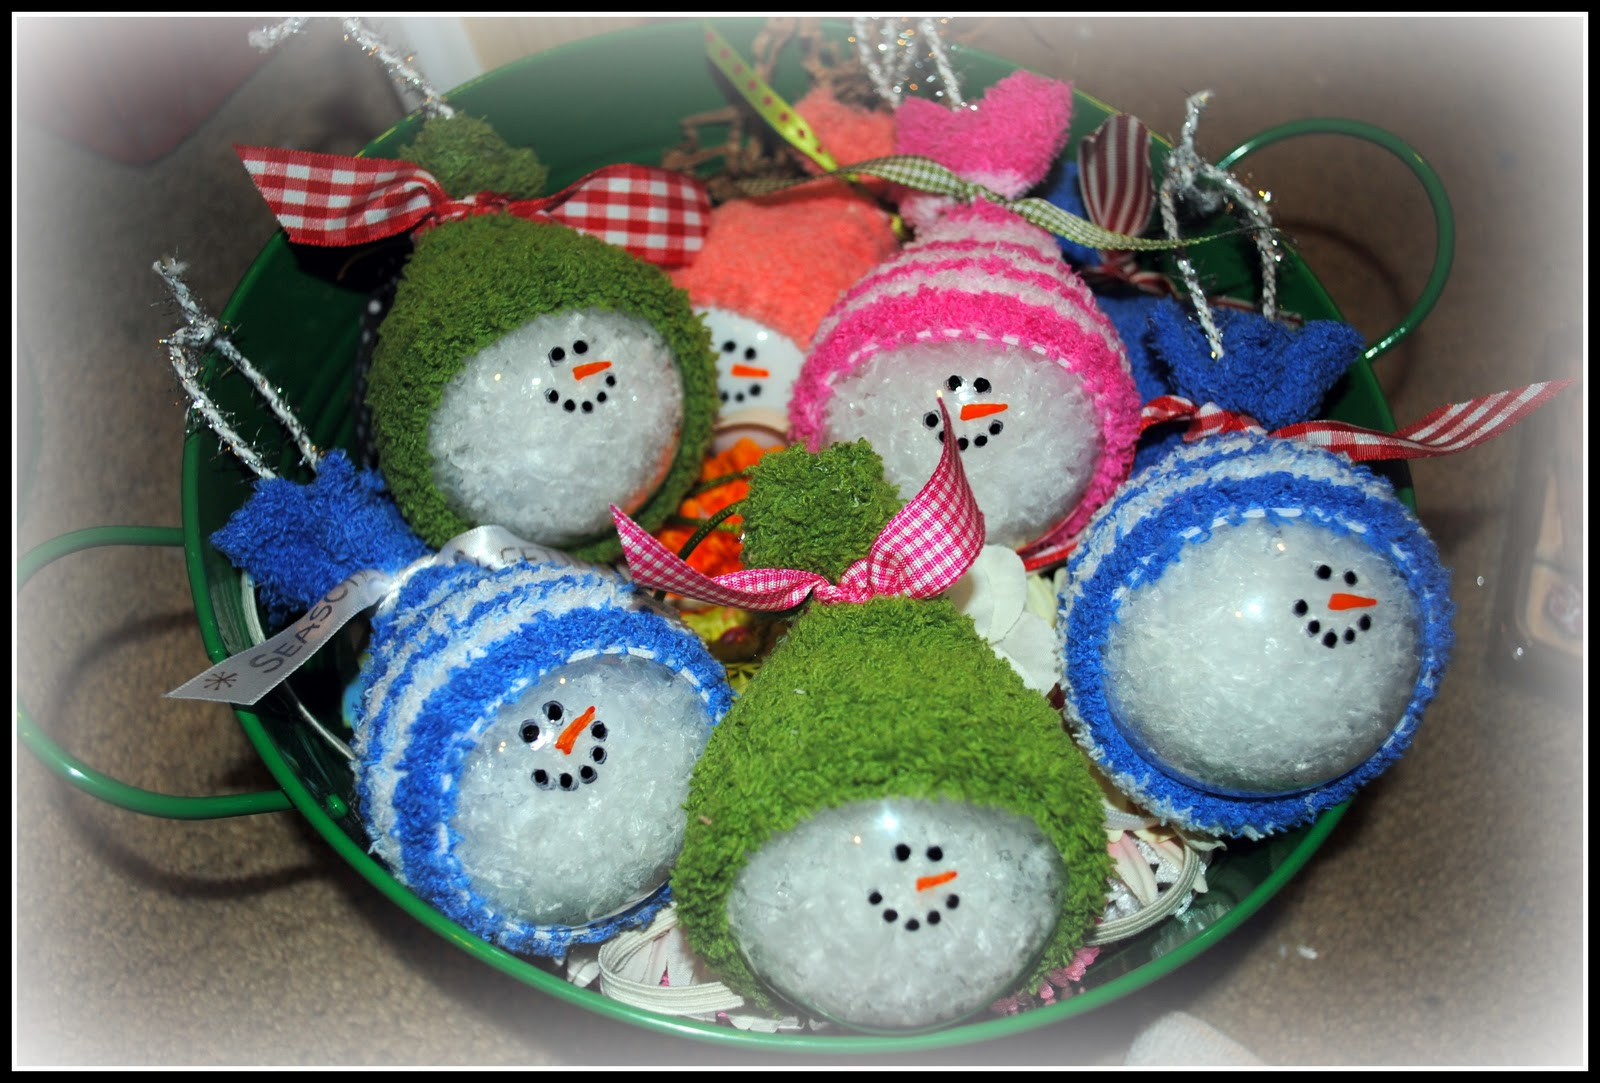 Best ideas about DIY Snowman Ornaments . Save or Pin Simply Cute Creations Snowmen Ornaments Now.